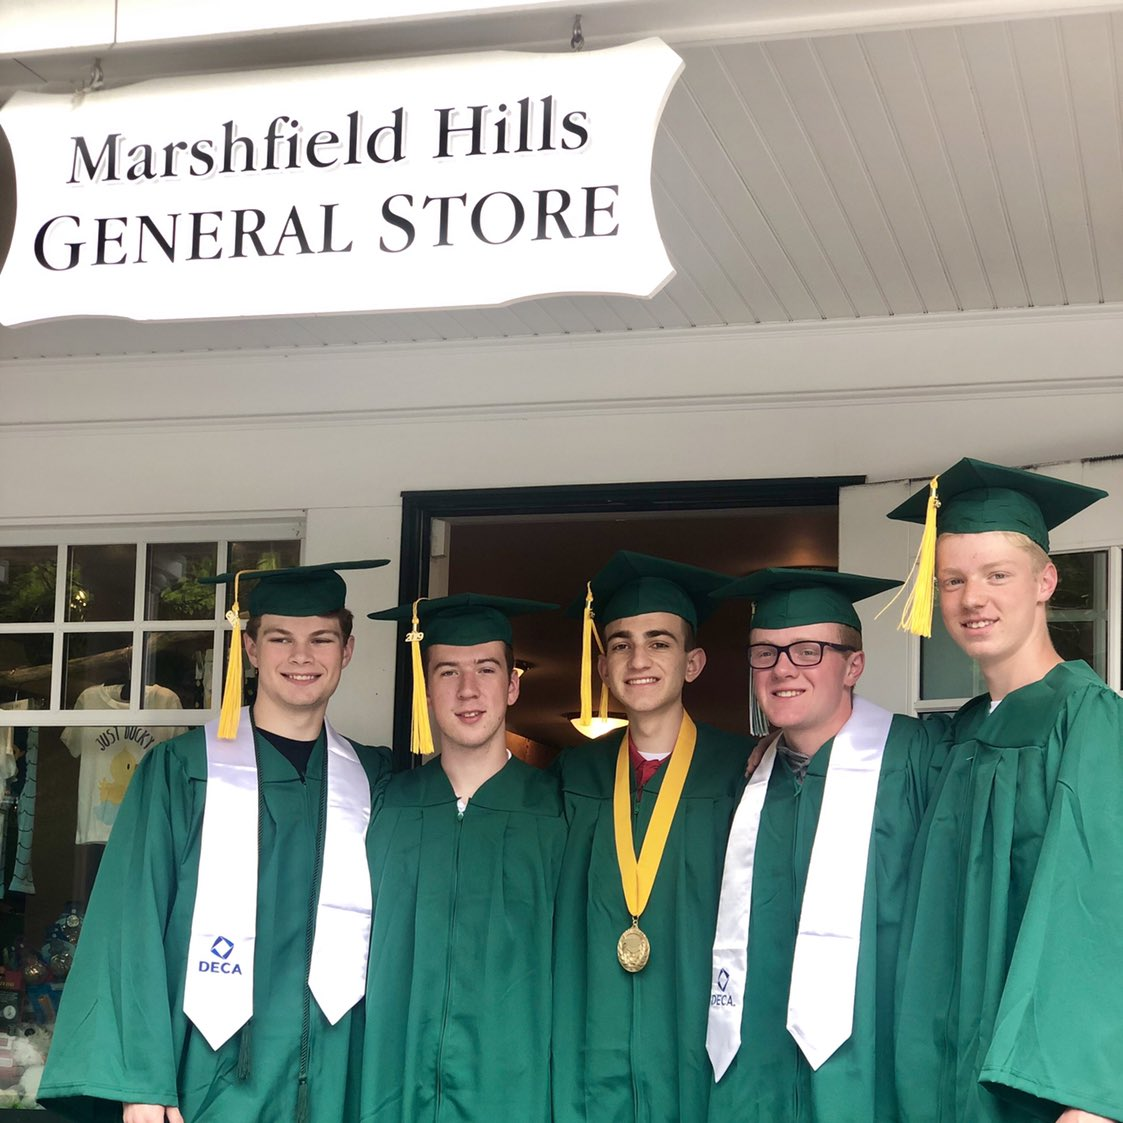 These five grew up buying penny candy and bouncy balls at the Marshfield Hills General Store. This weekend, they'll graduate from Marshfield High School, but the store will forever be a part of their childhood. @SteveCarell